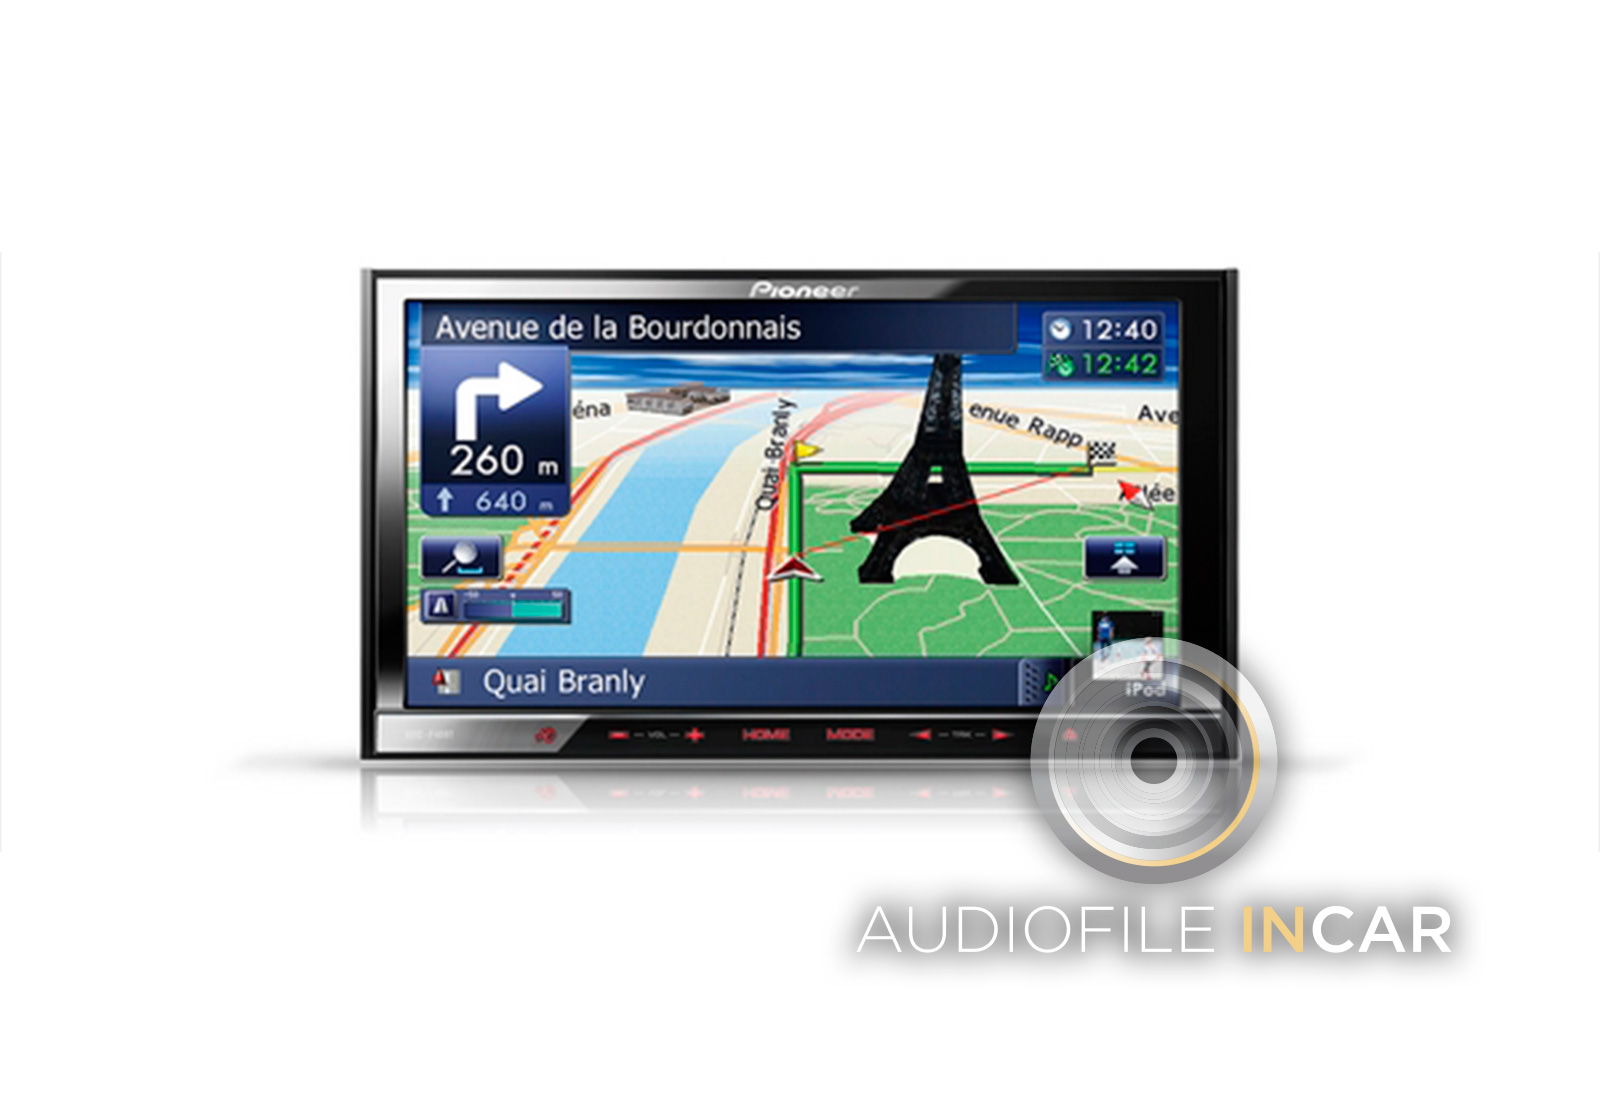 The new Pioneer Avic-F40, arguably the best double DIN Navigation system ever made.